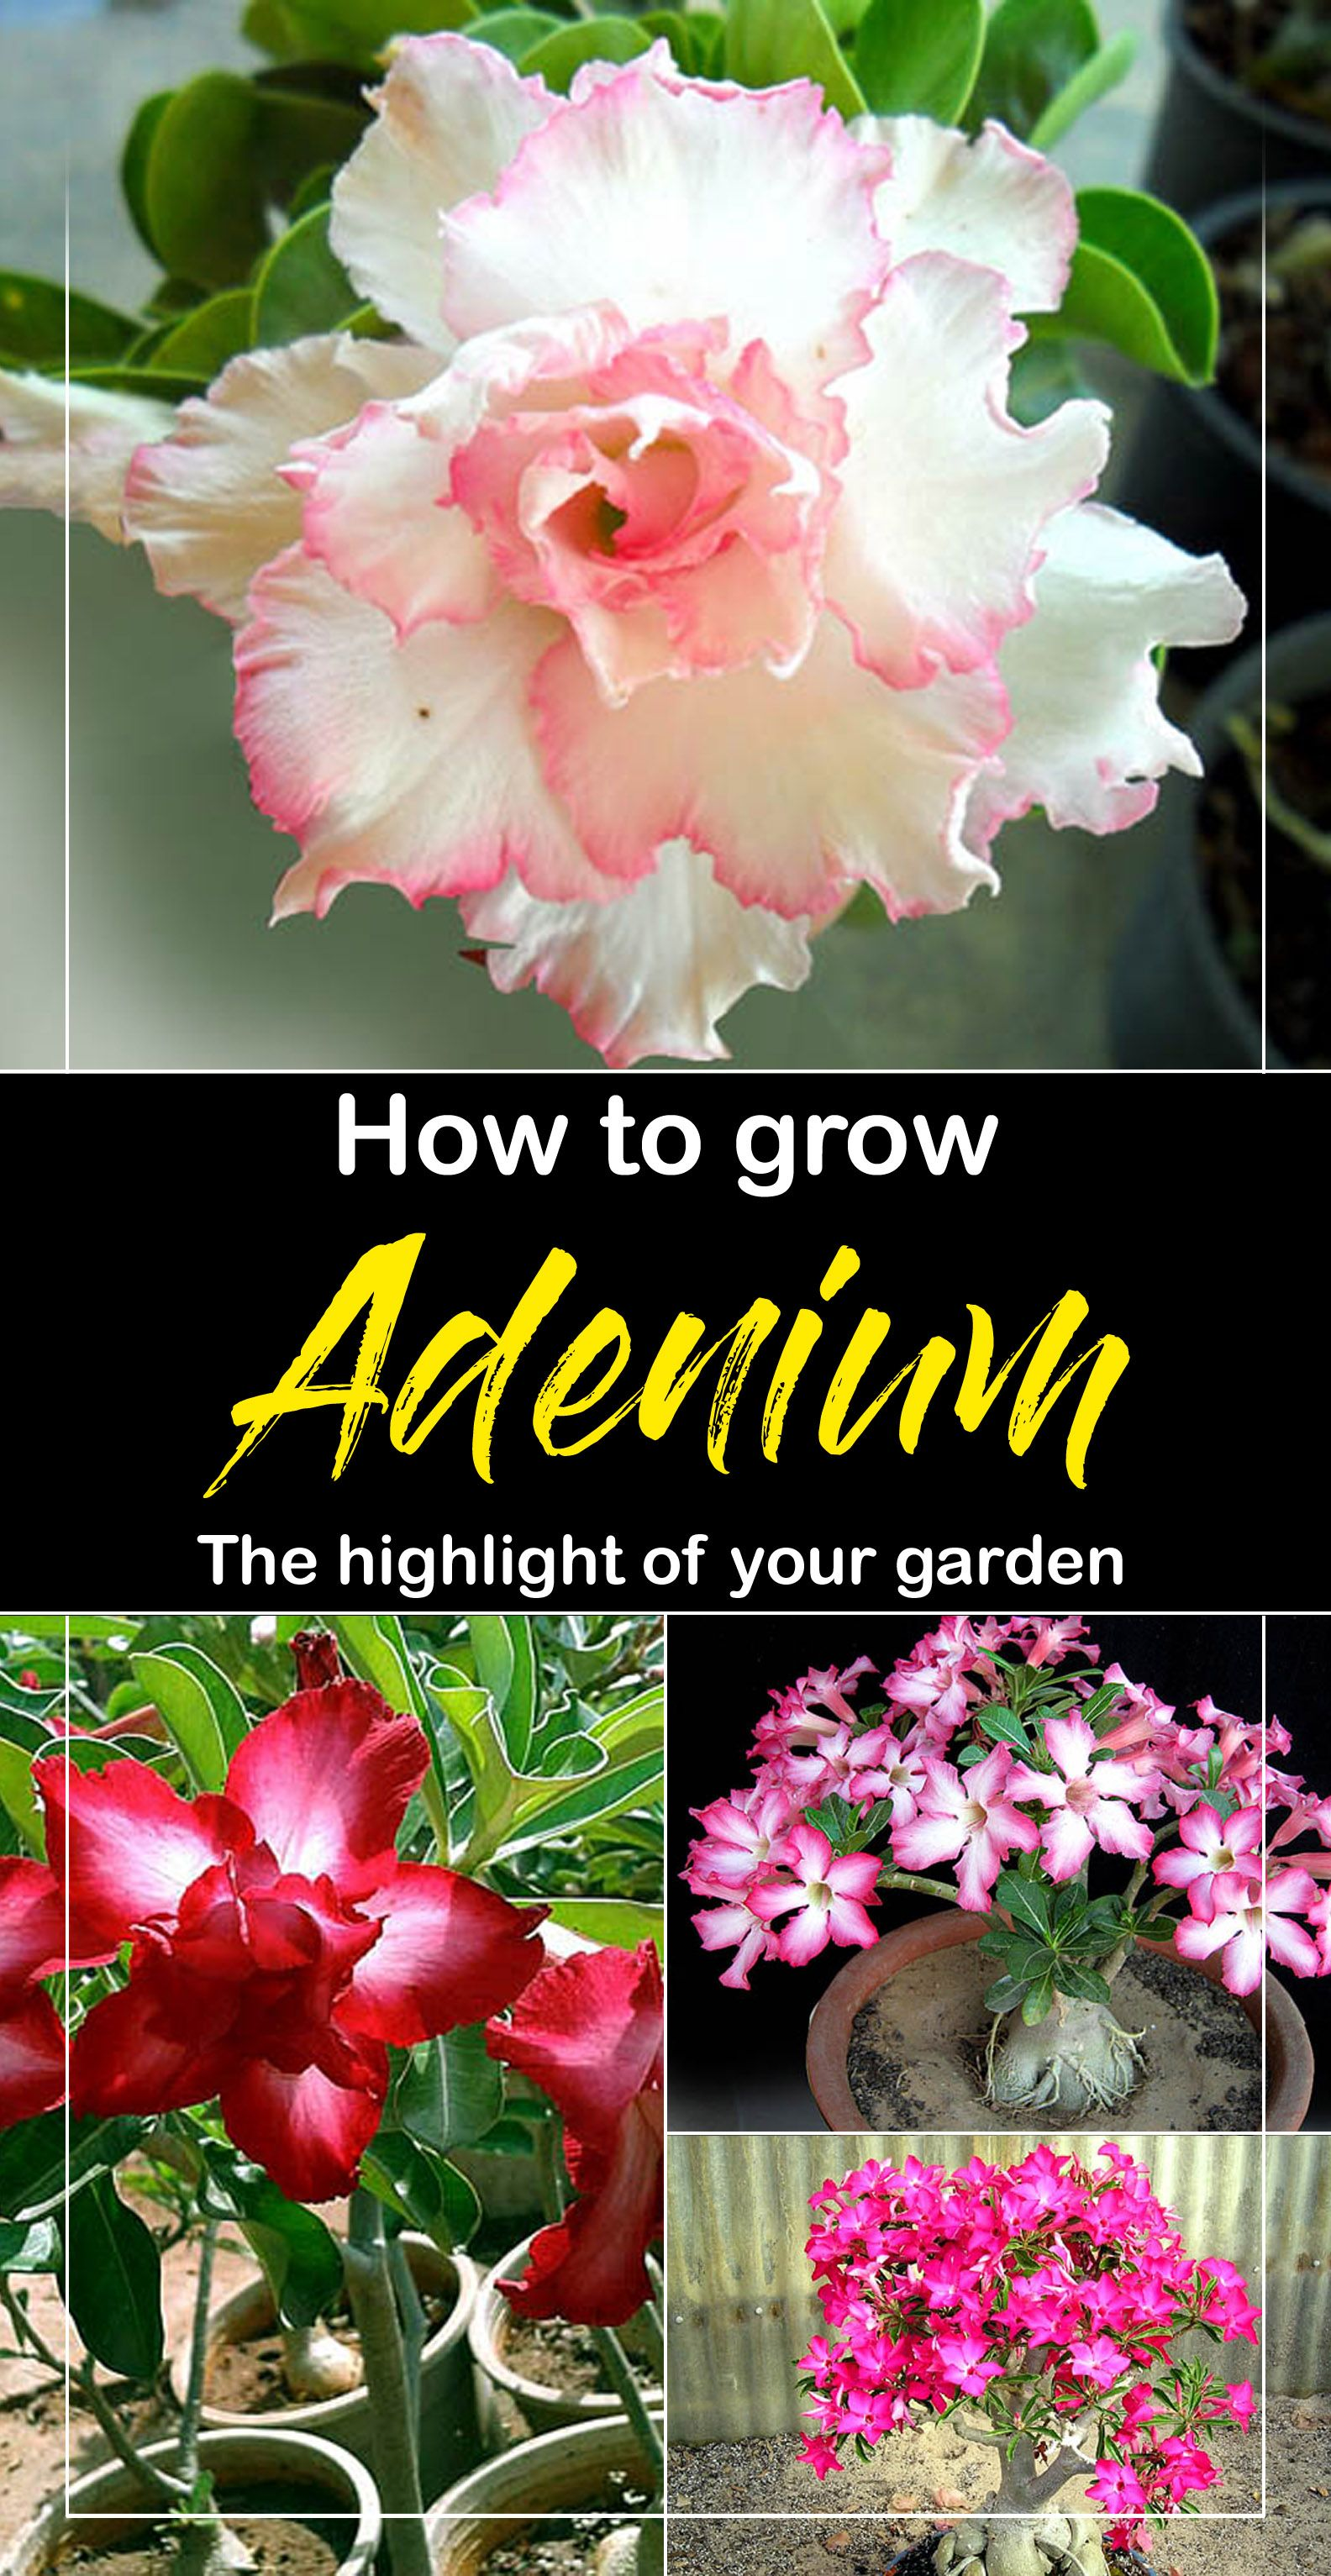 Adenium Flowering Plants That Are Grown In A Container Its Flowers